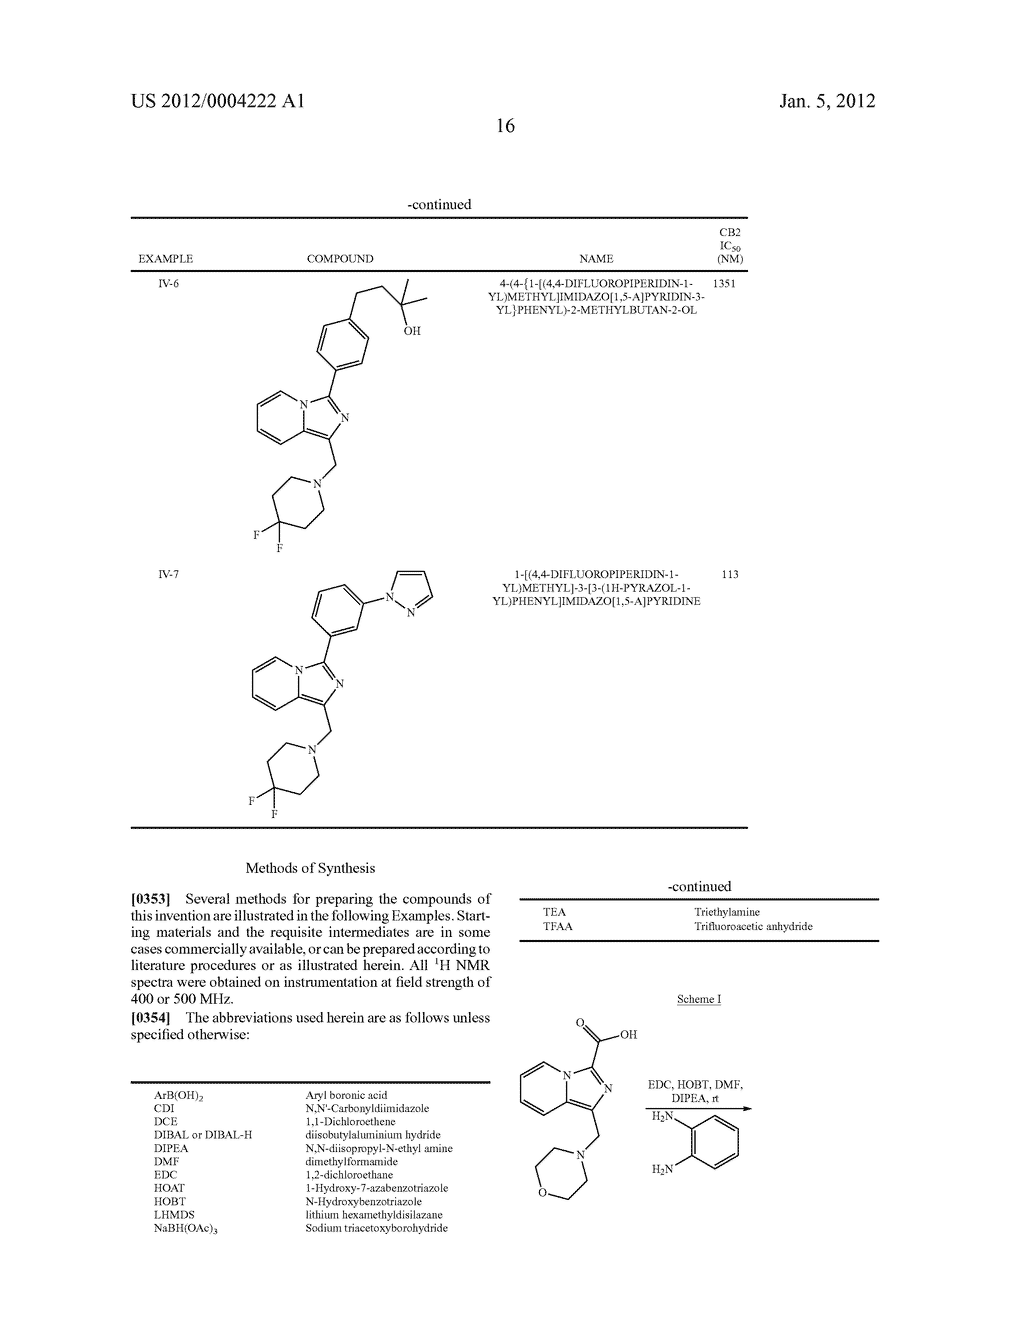 CB2 RECEPTOR LIGANDS FOR THE TREATMENT OF PAIN - diagram, schematic, and image 17